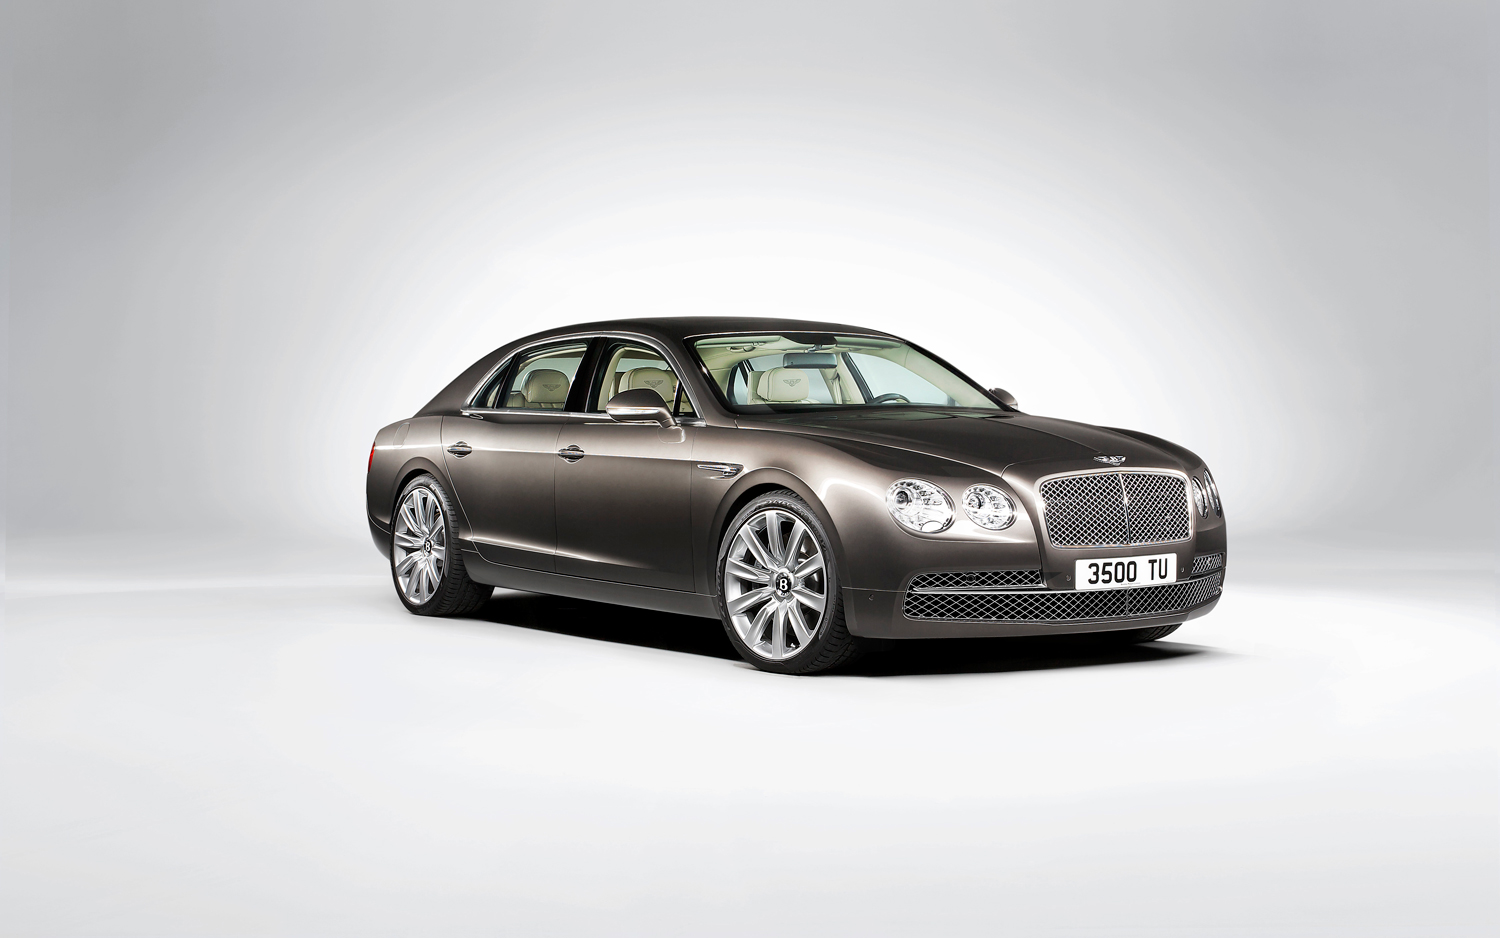 Amazing 2014 Bentley Flying Spur Pictures & Backgrounds